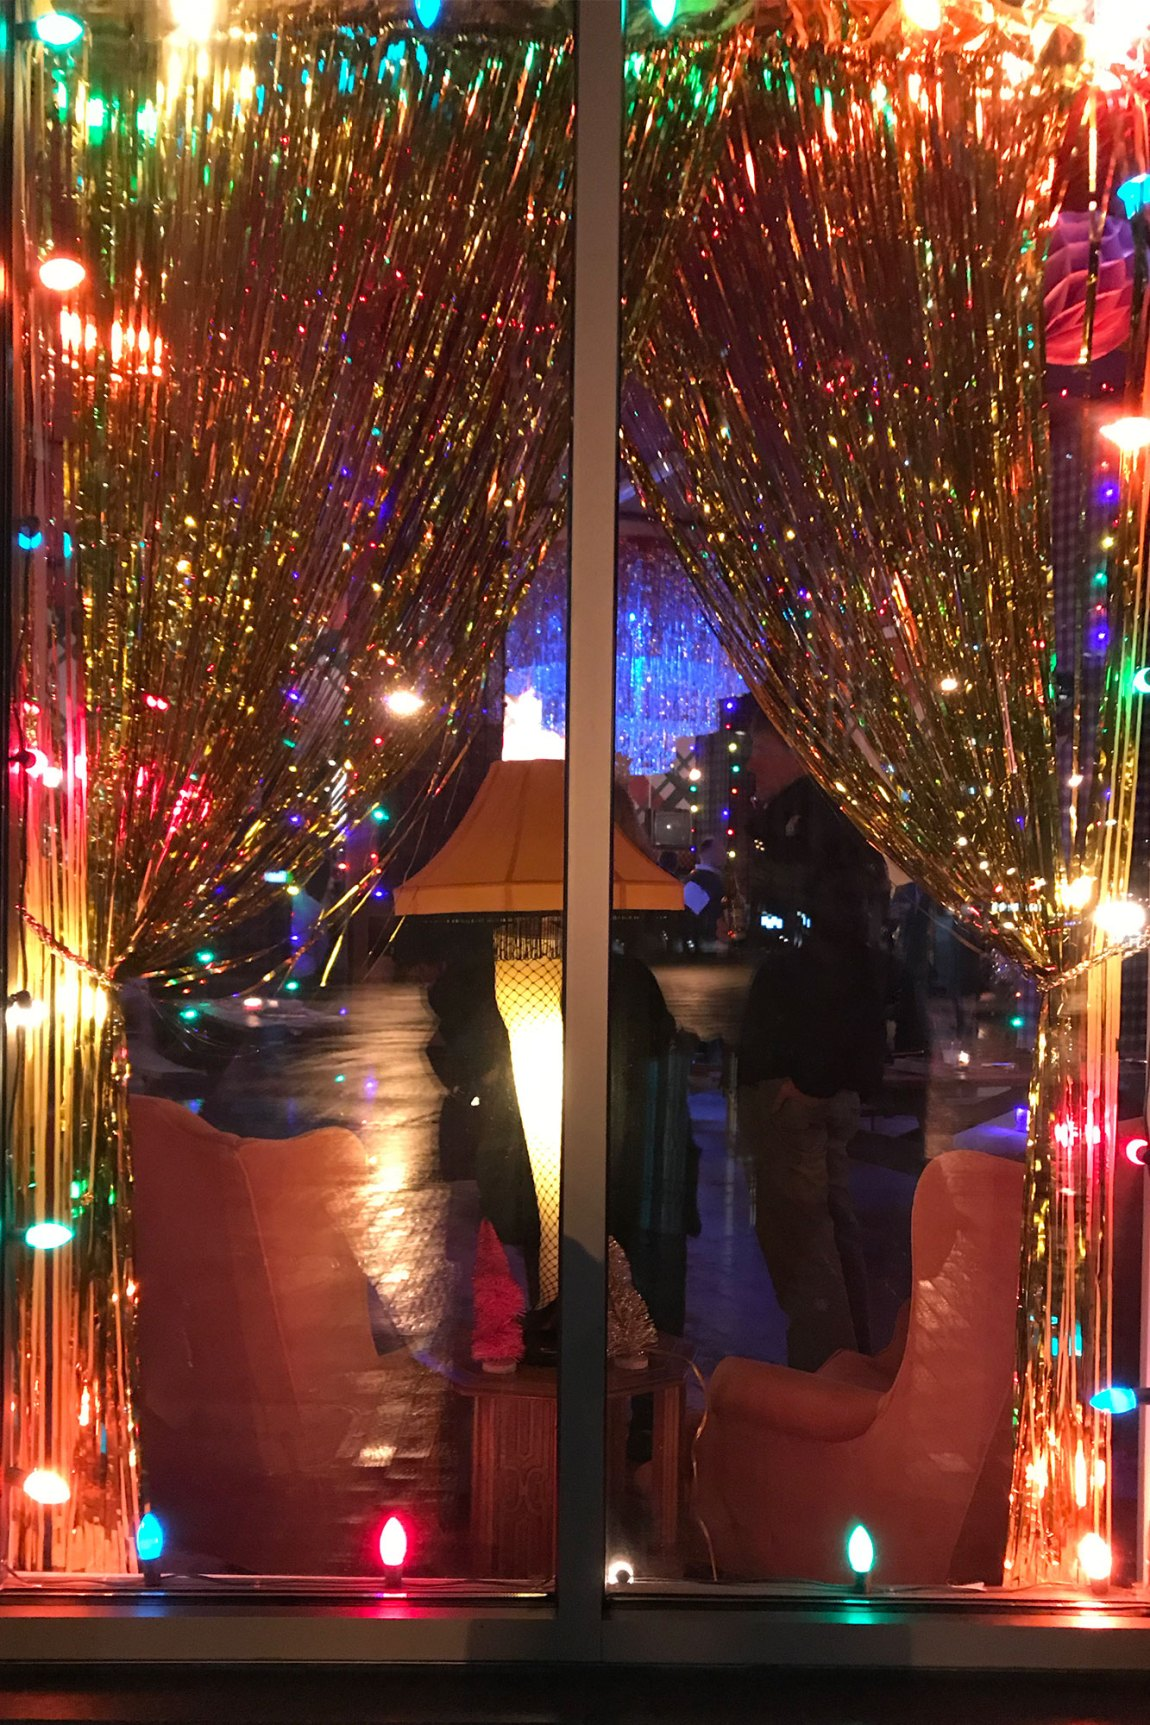 Tinsel and Christmas Lights in a window with the leg lamp